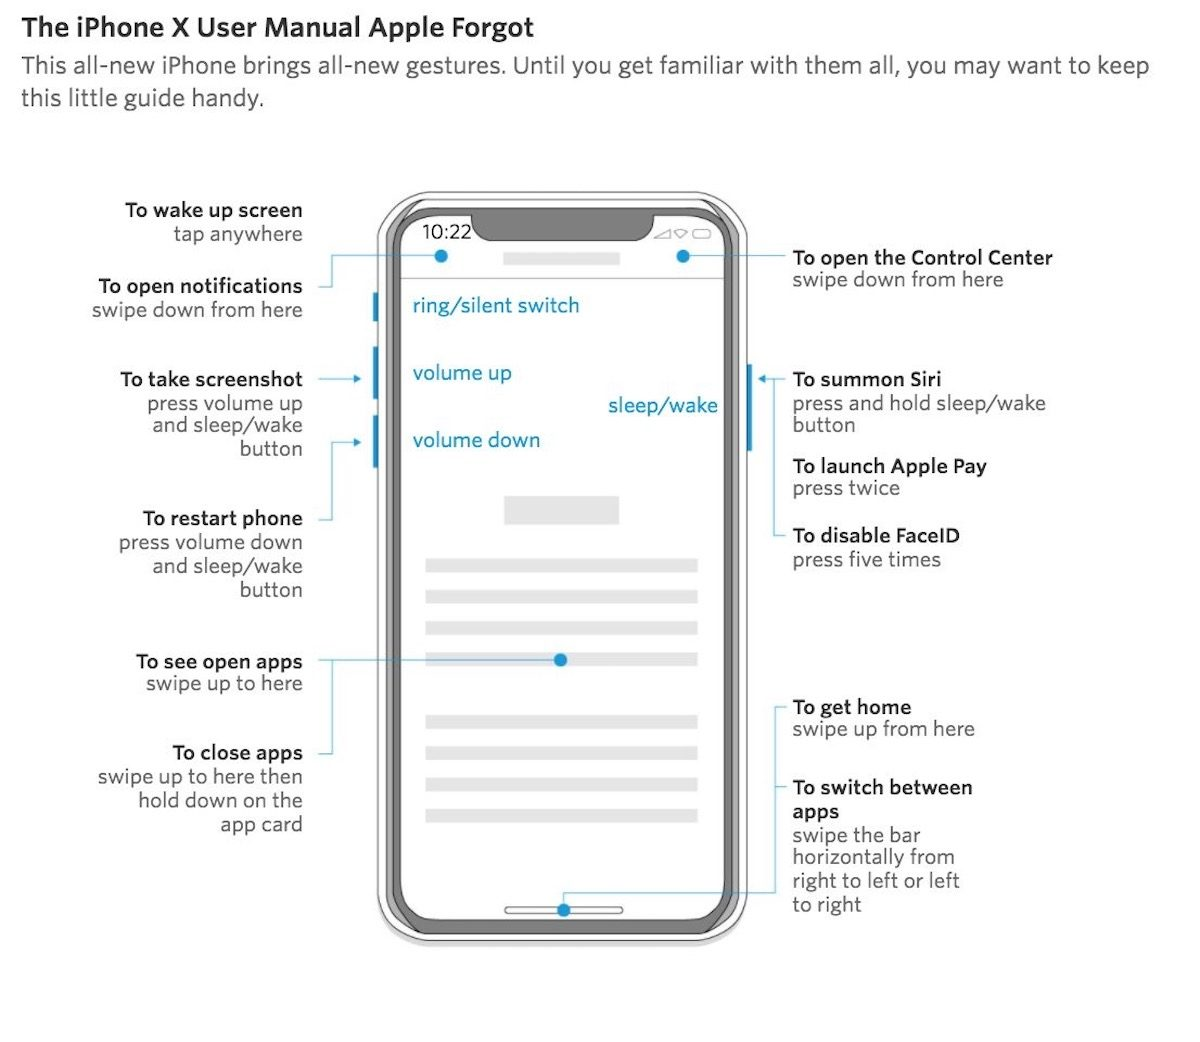 Image of unofficial iPhone X manual that shows all the controls.